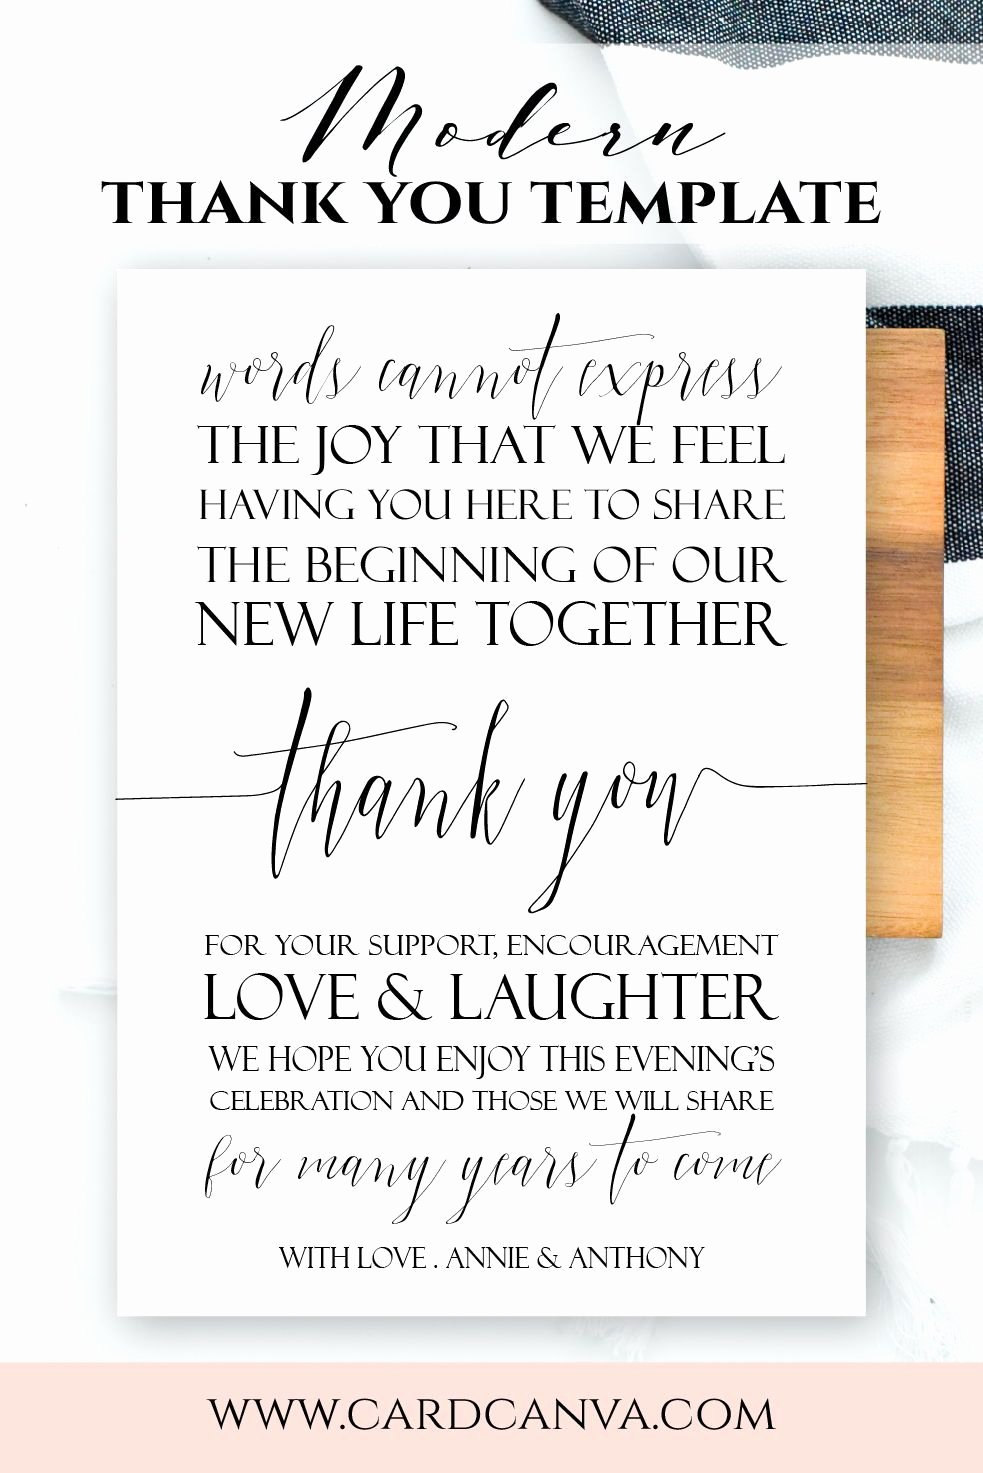 Wedding Thank You Note Template Inspirational Modern Wel E Letter Modern Script Wedding Wel E Note